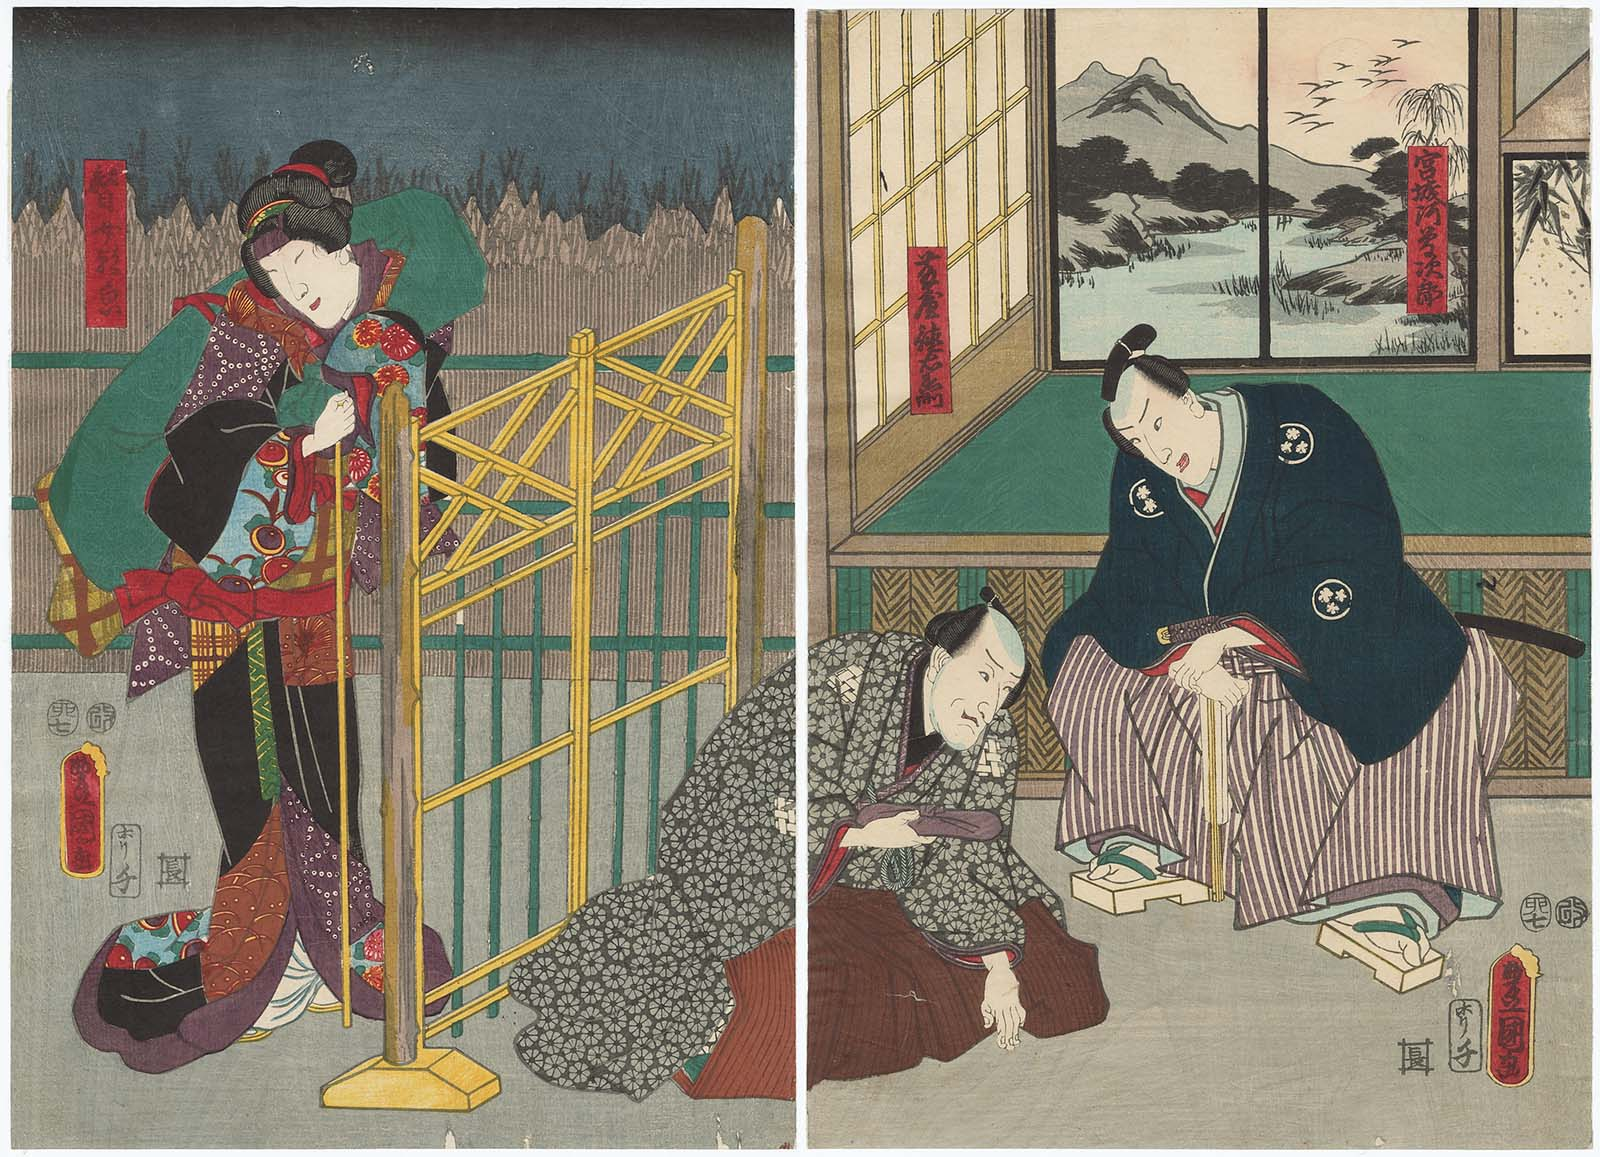 A traditional Japanese painting across two panels. On the left-hand panel, a woman with heavy luggage has arrived outside at a yellow gate or fence. On the right, two men play a game indoors. Dominant colours are green, grey, red and blue.